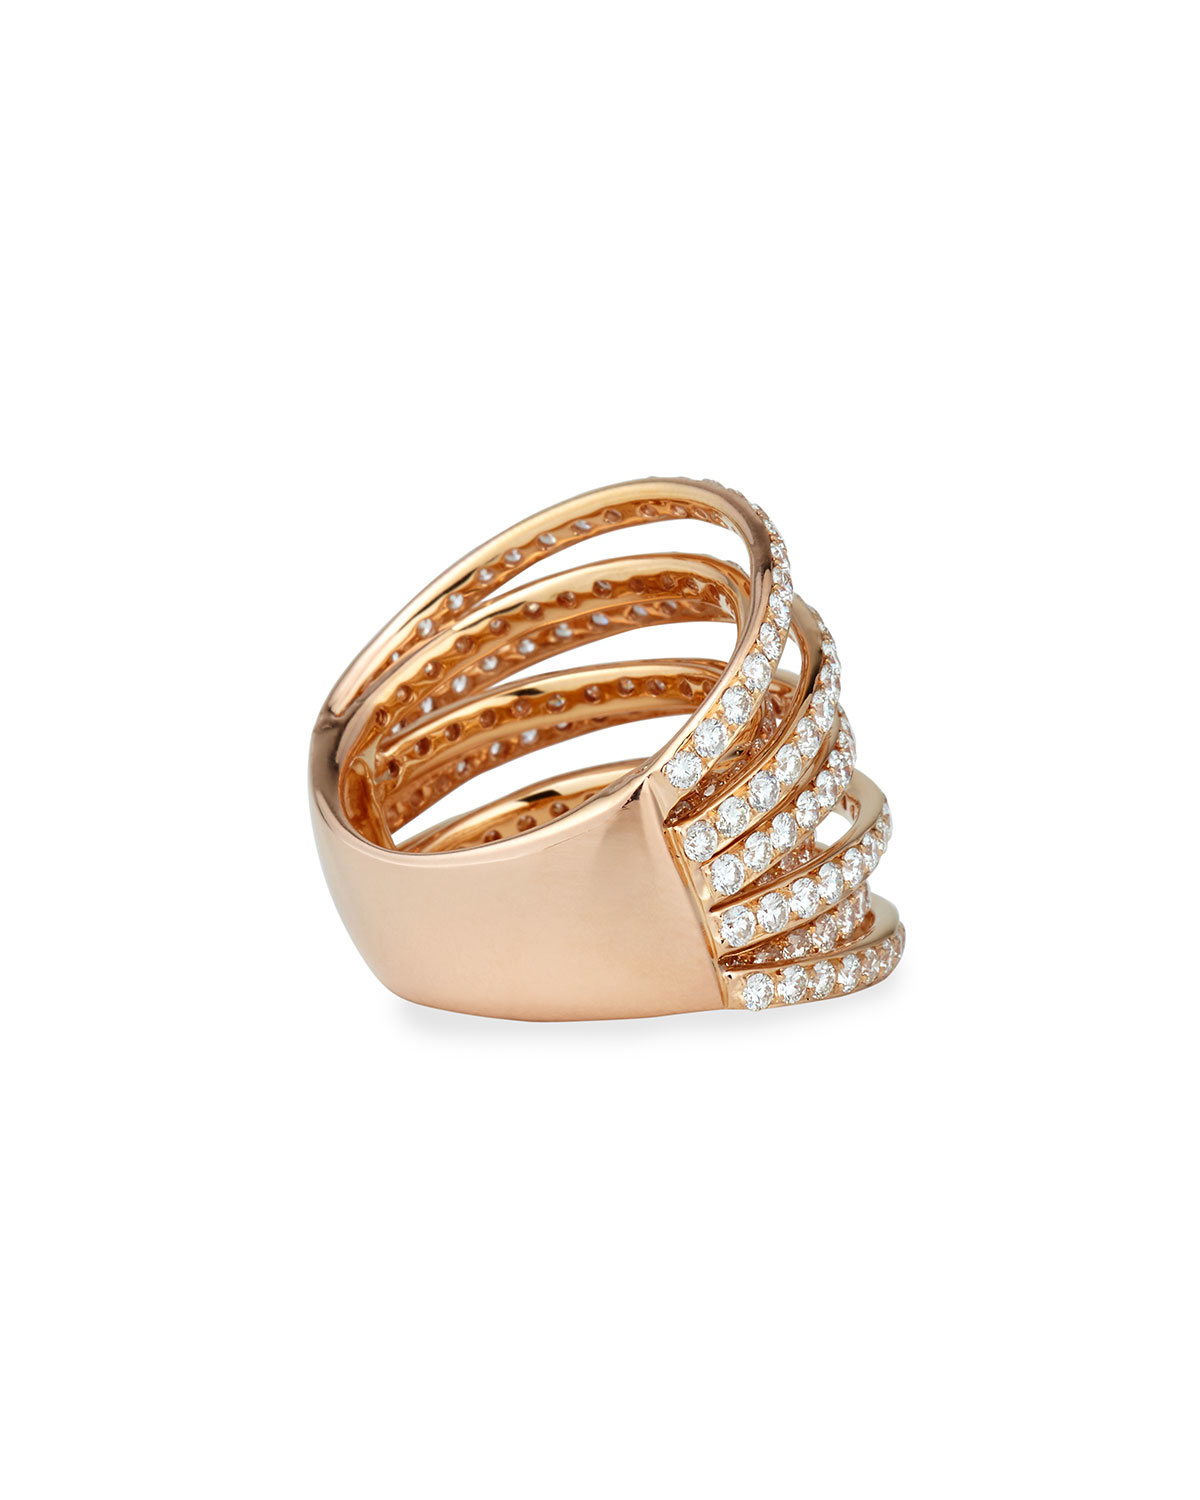 Bessa 18K Rose Gold Three-Row Ring with Diamonds tjEkdAi5C